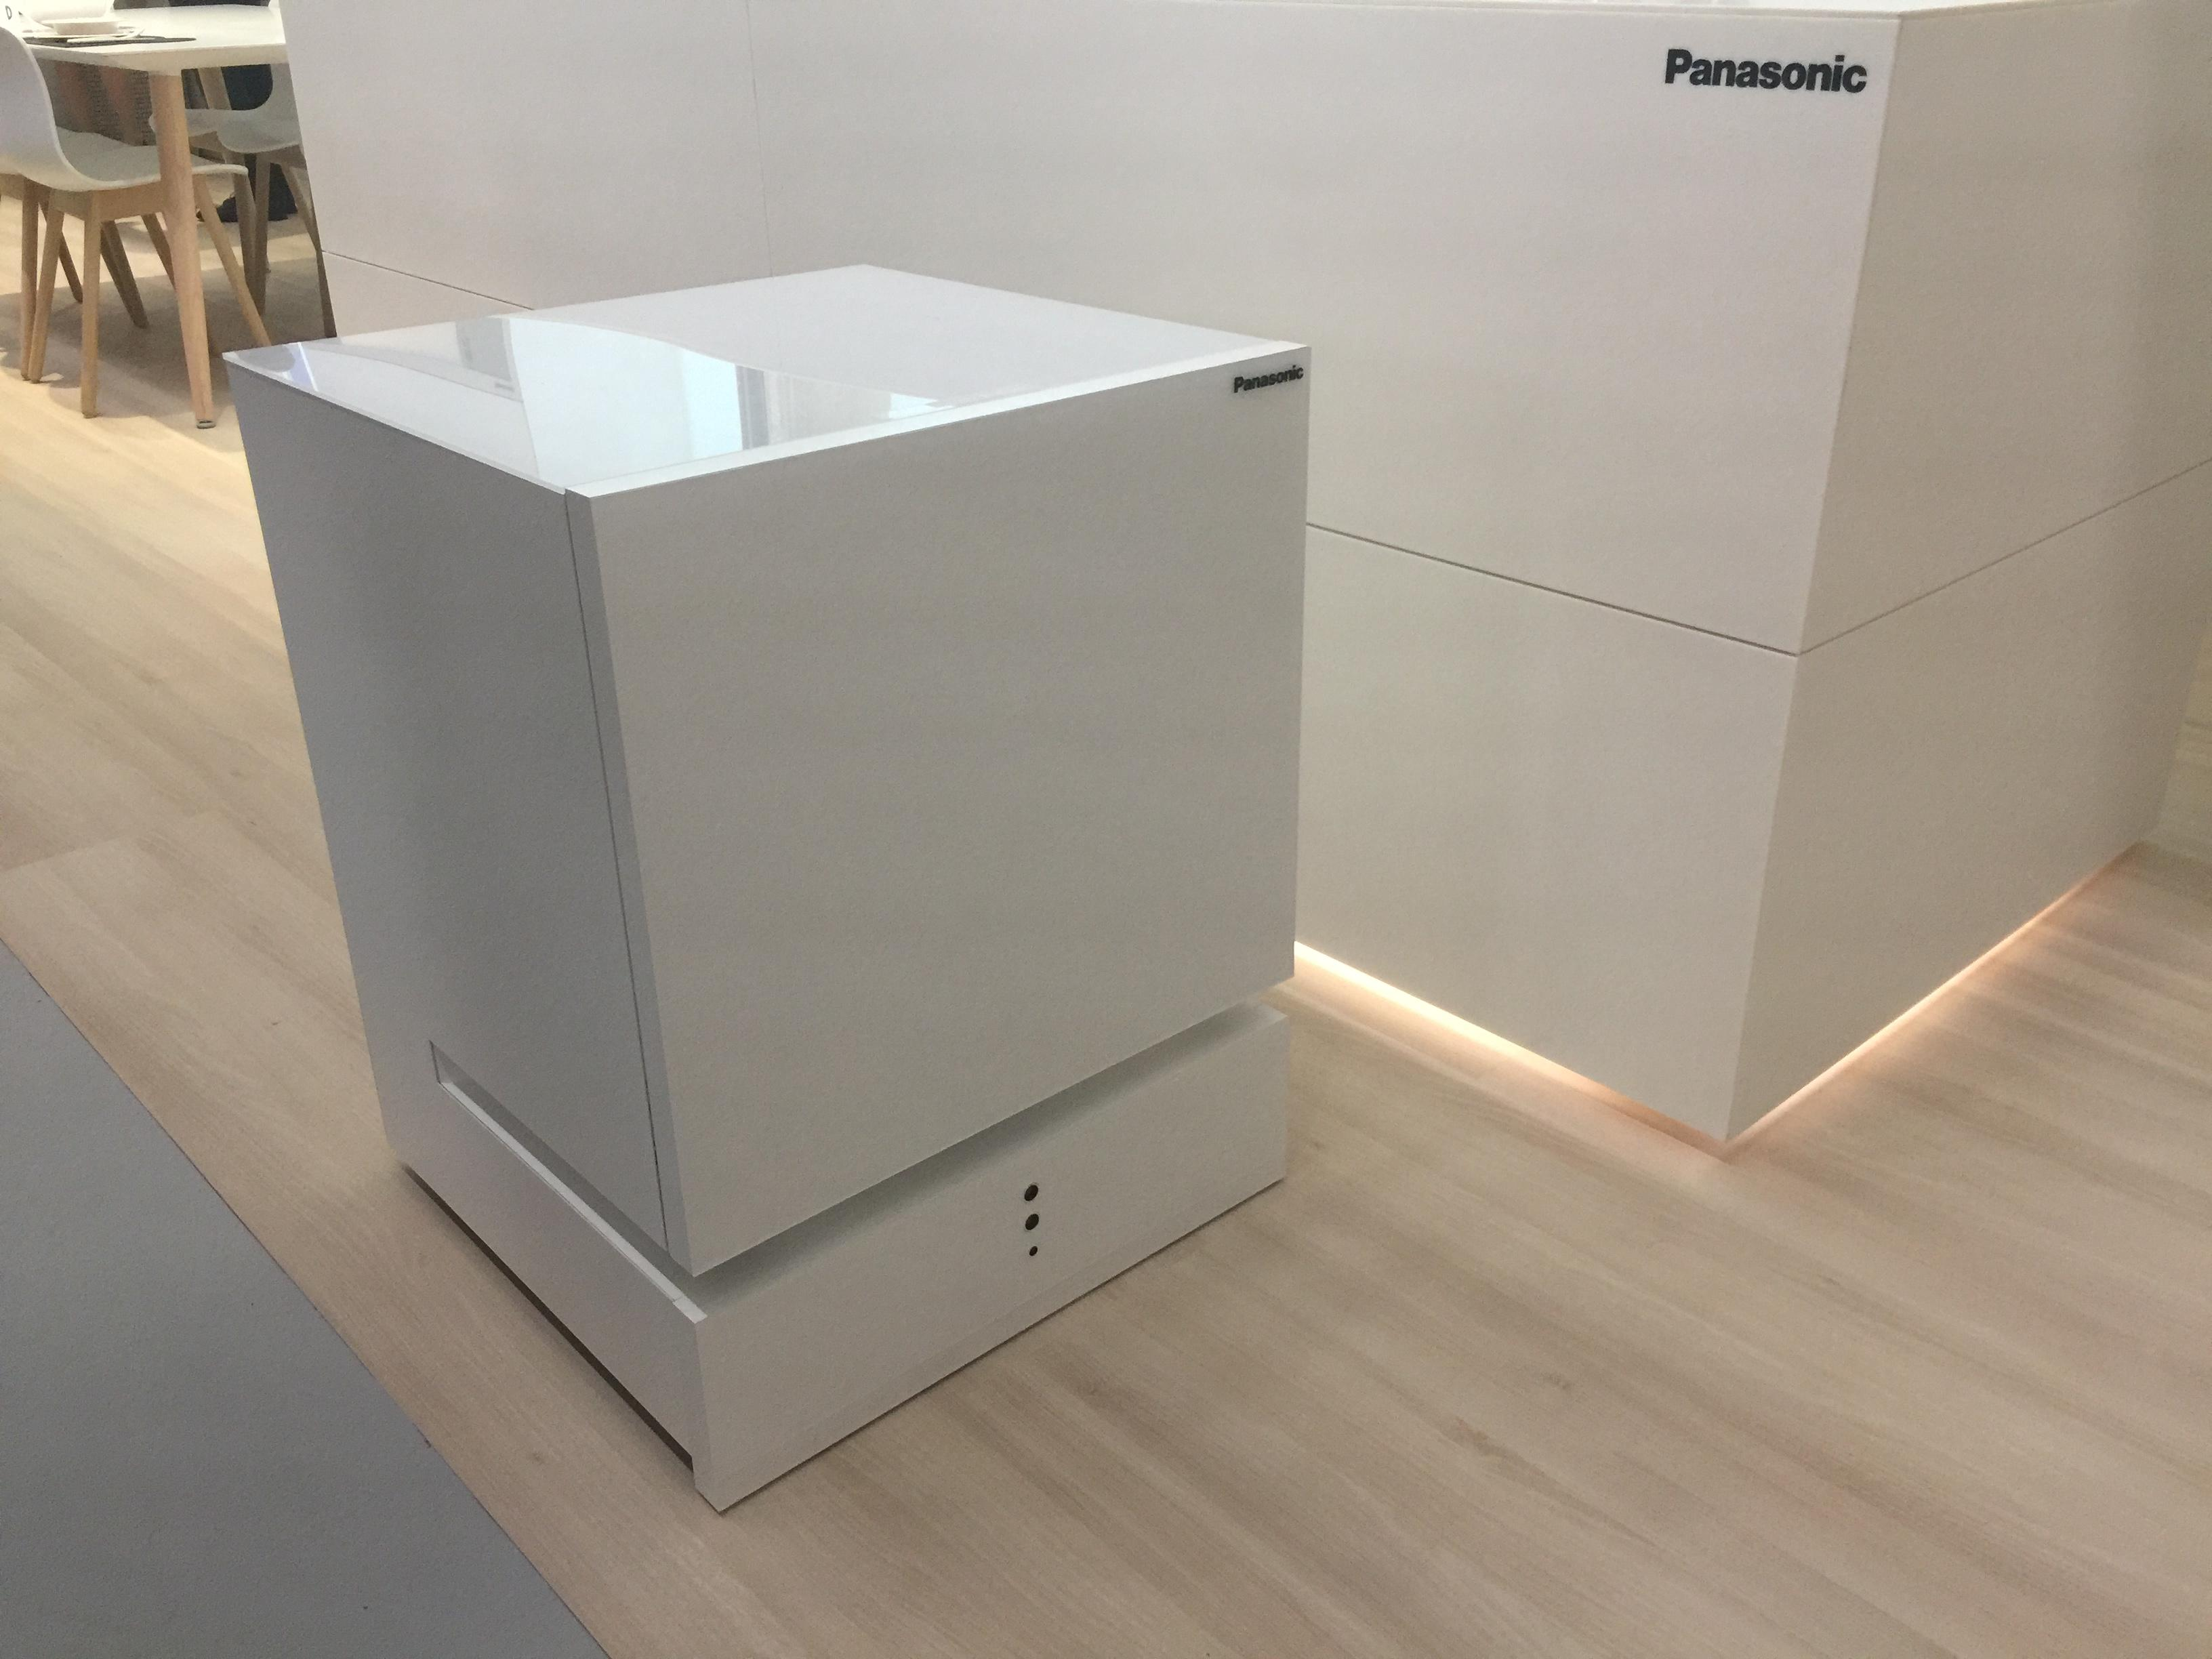 panasonic-movable-fridge-sake-cooler